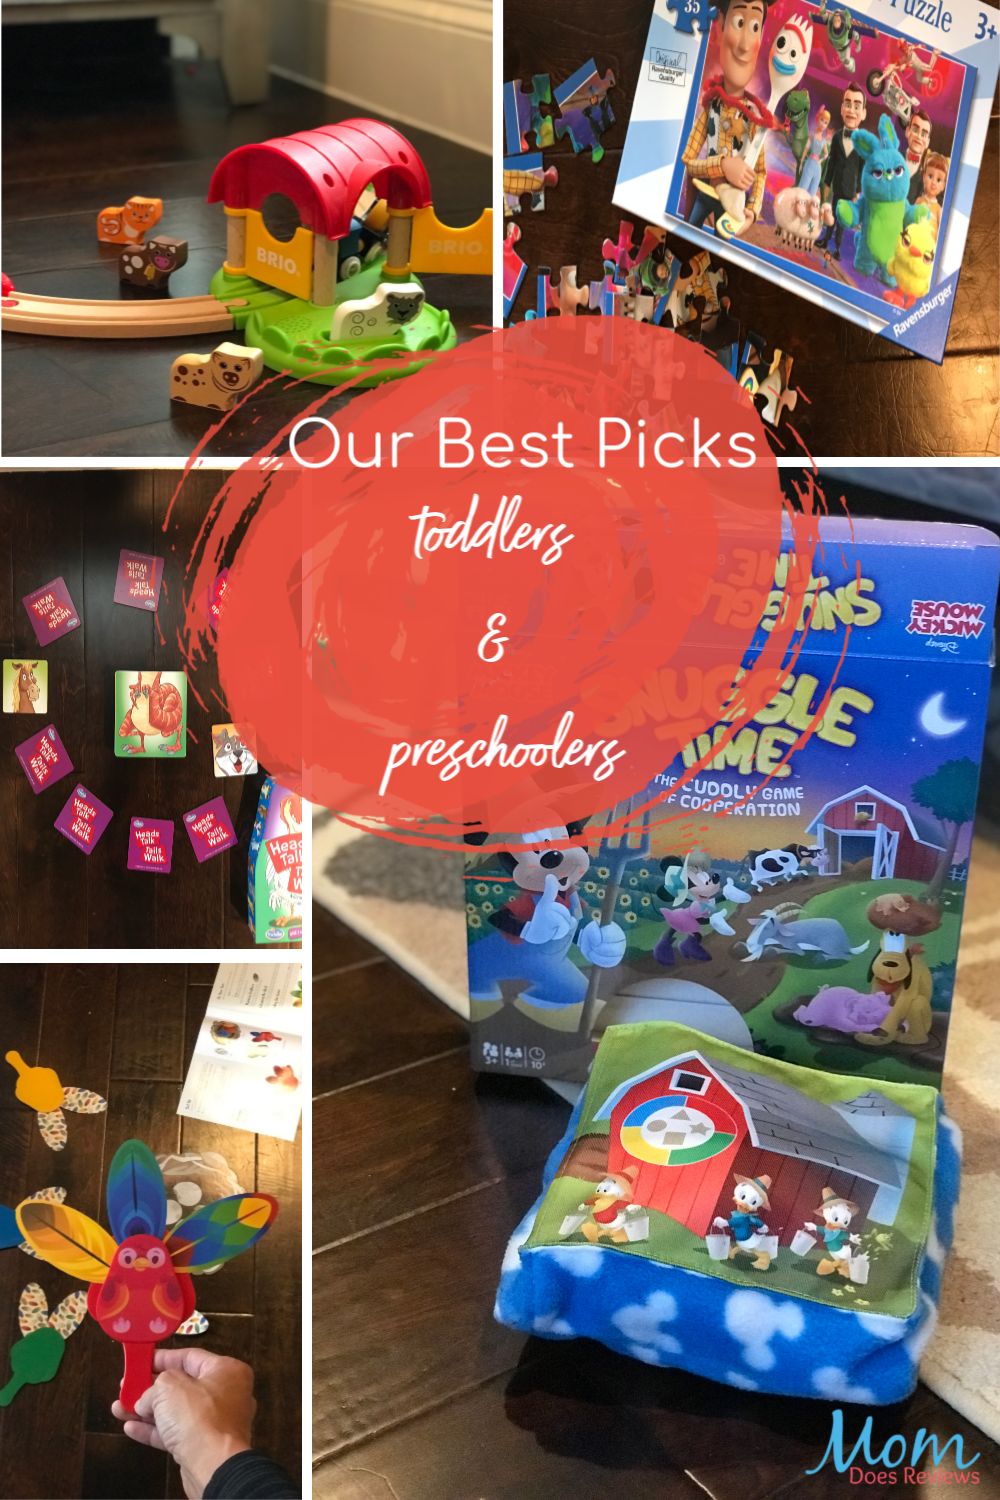 Best Bets for Toddlers & Preschoolers This Christmas #MegaChristmas19